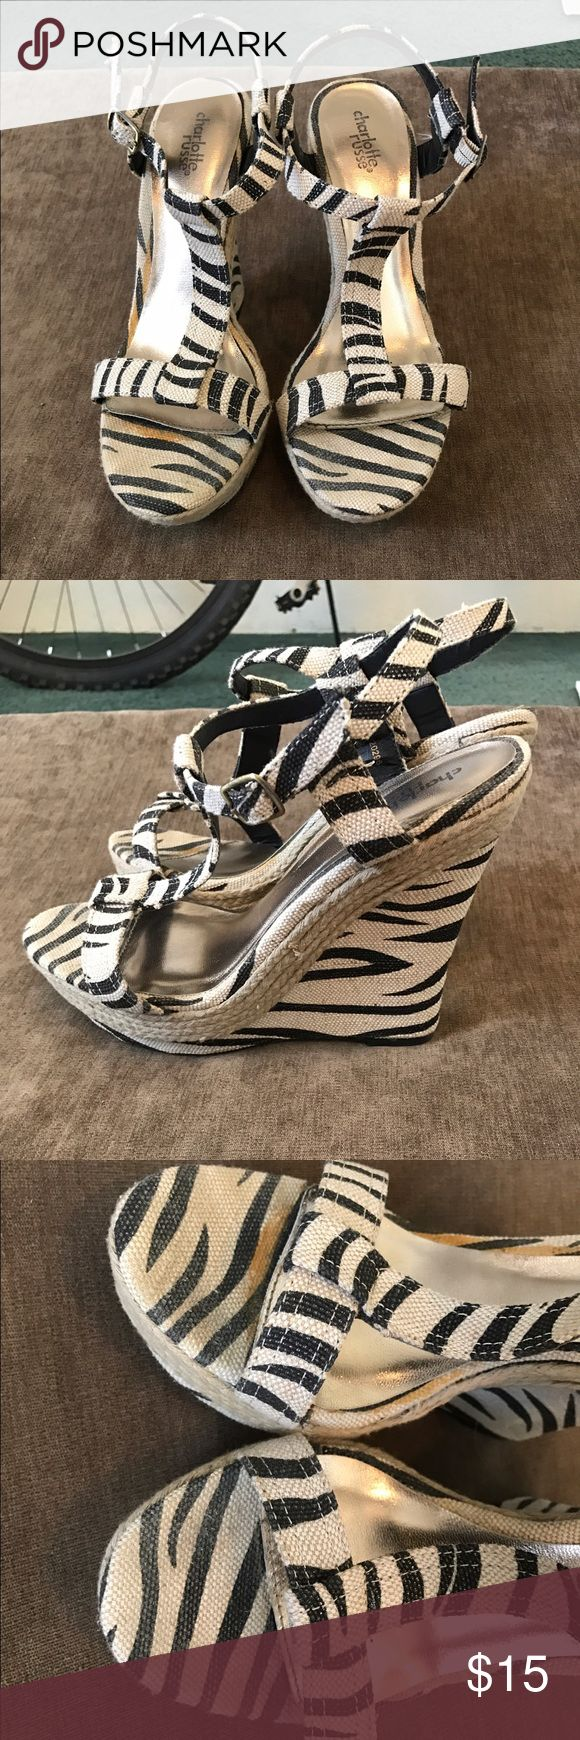 Zebra stripe wedges Only worn a couple times. Some discoloration on the toe because of the type of fabric Charlotte Russe Shoes Wedges